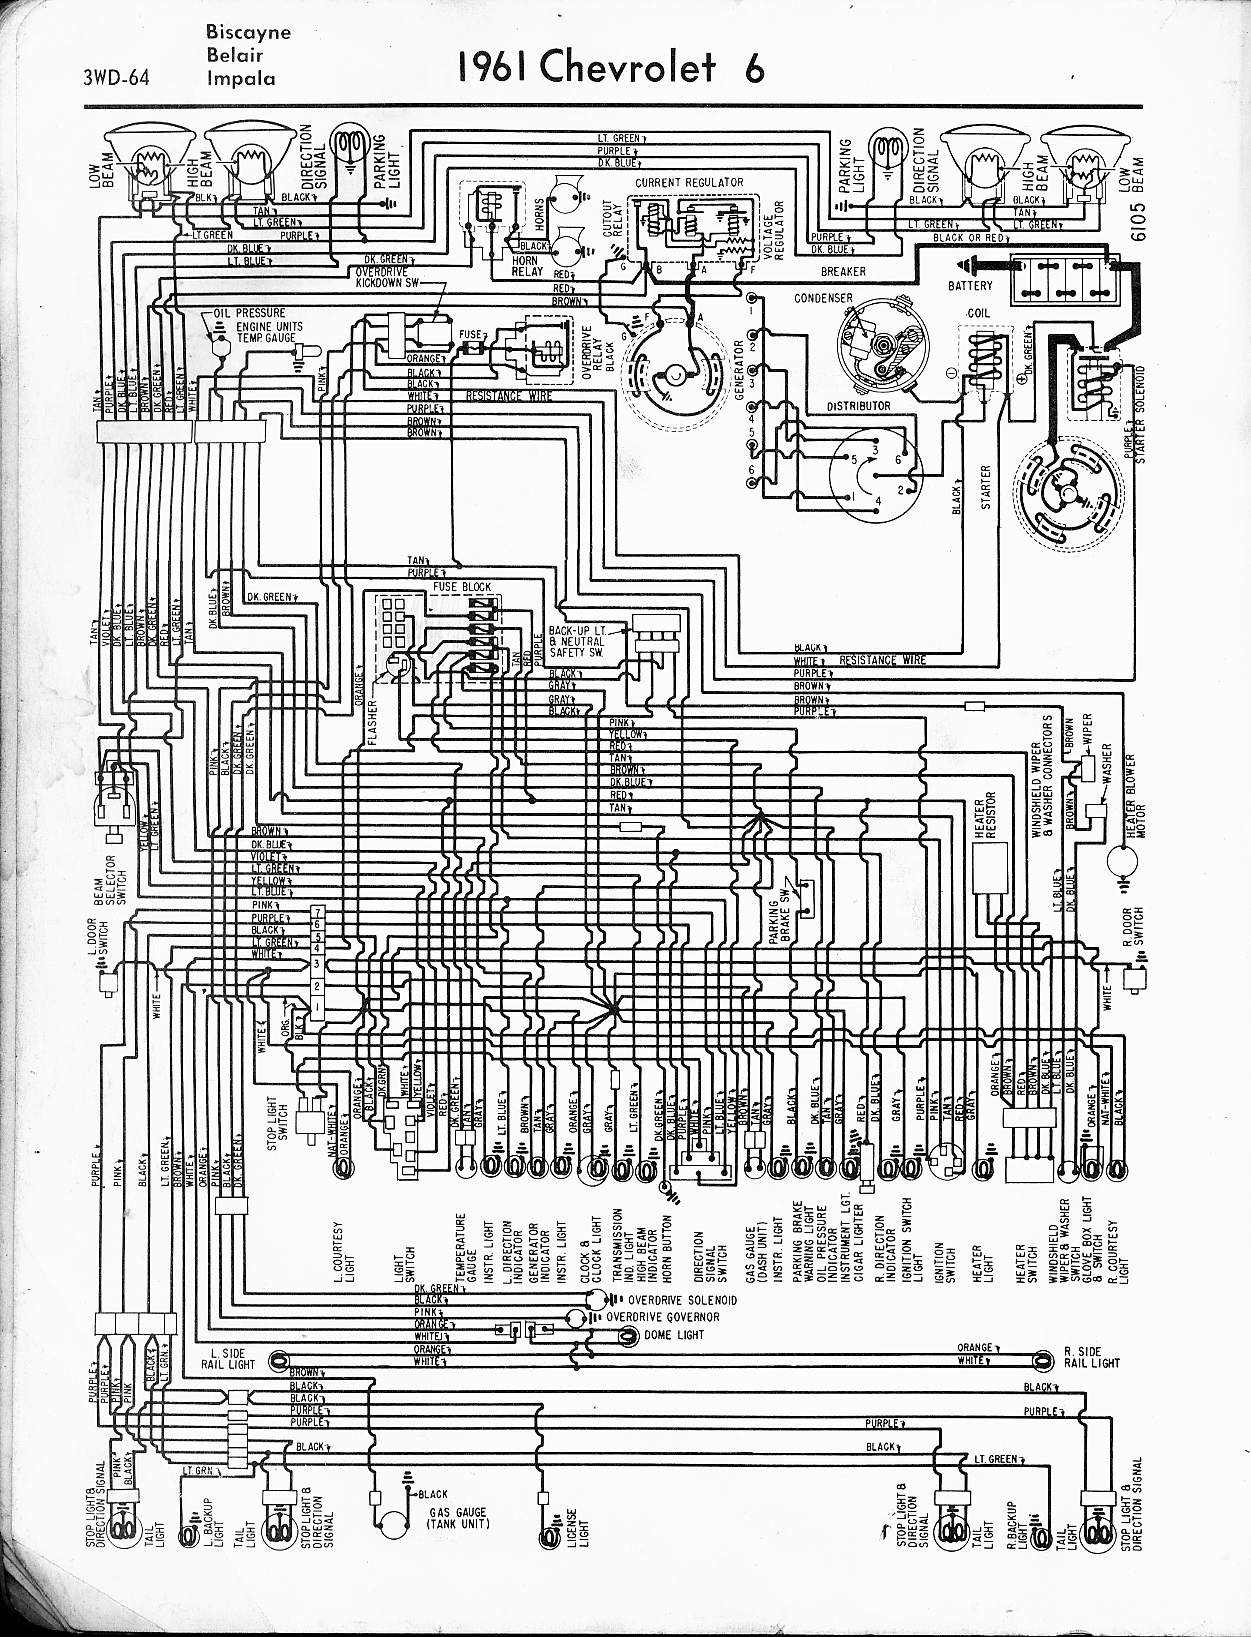 1955 Chevy Tail Light Wiring Harness Diagram Wiring Diagram Of 1955 Chevrolet Classic All About 57 Chevy Ignition Switch Wiring Diagram Wiring Diagram Tail Lights Stay On 1955 Chevy 1956 Chevy 1957